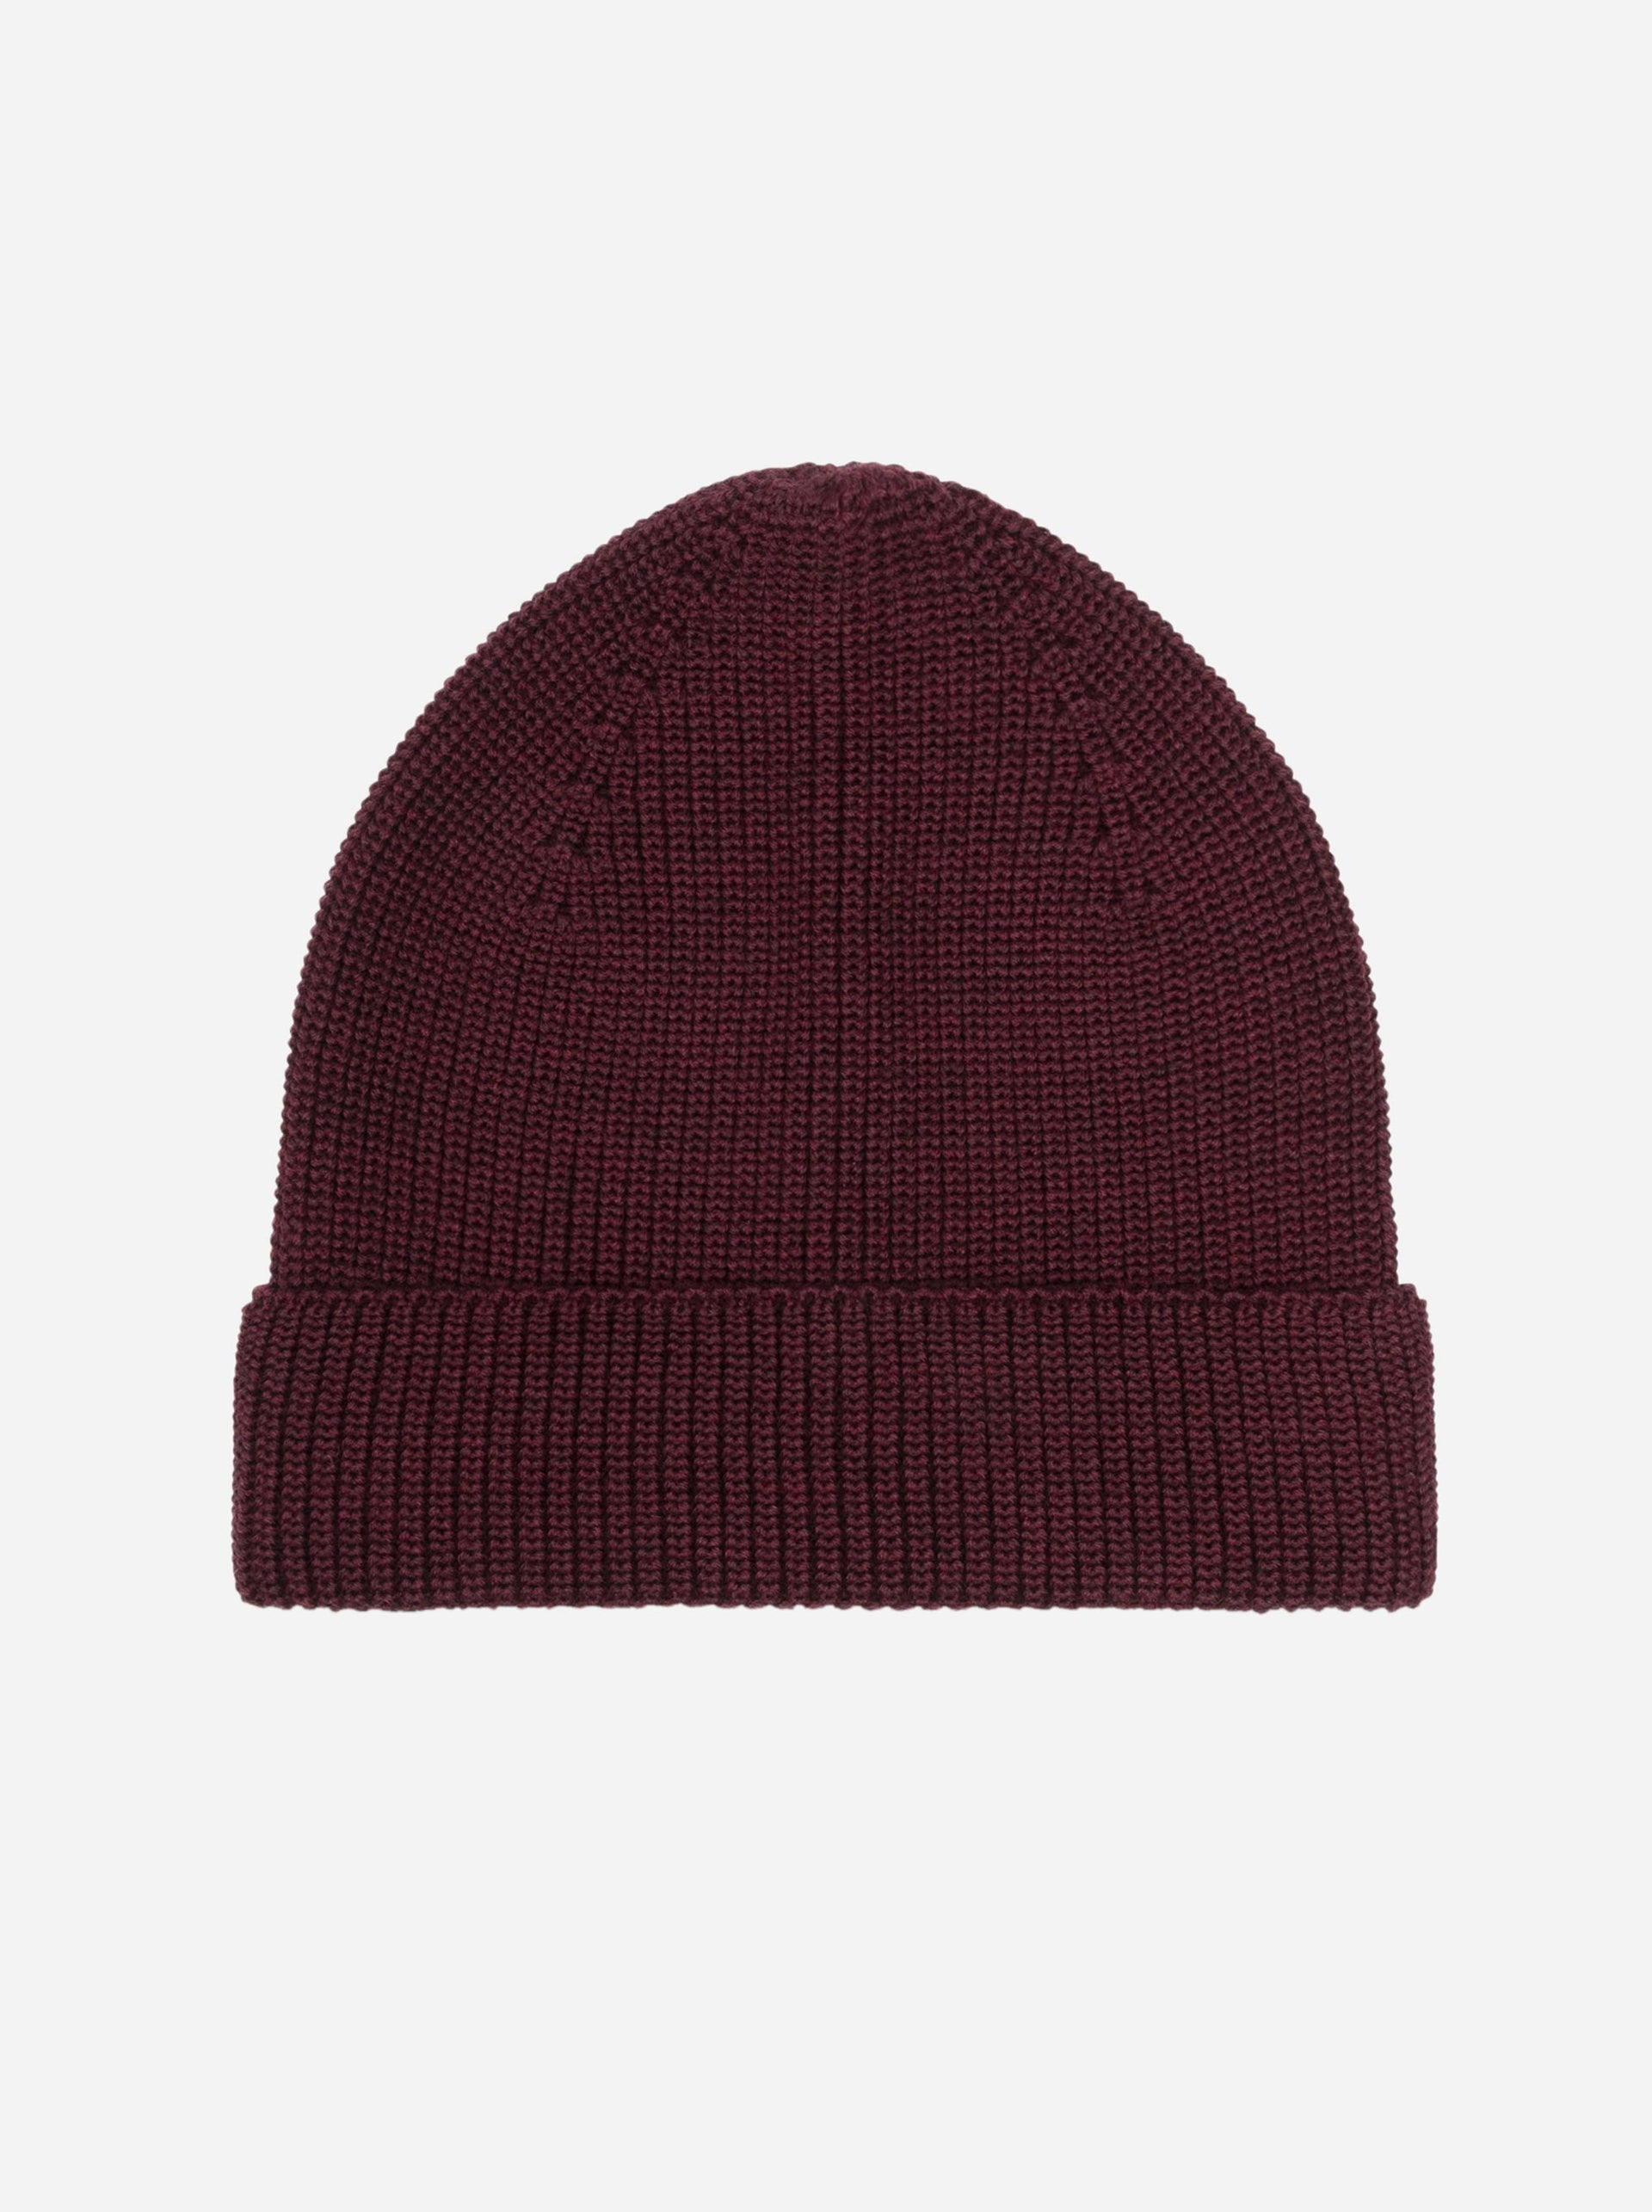 The Beanie - Burgundy